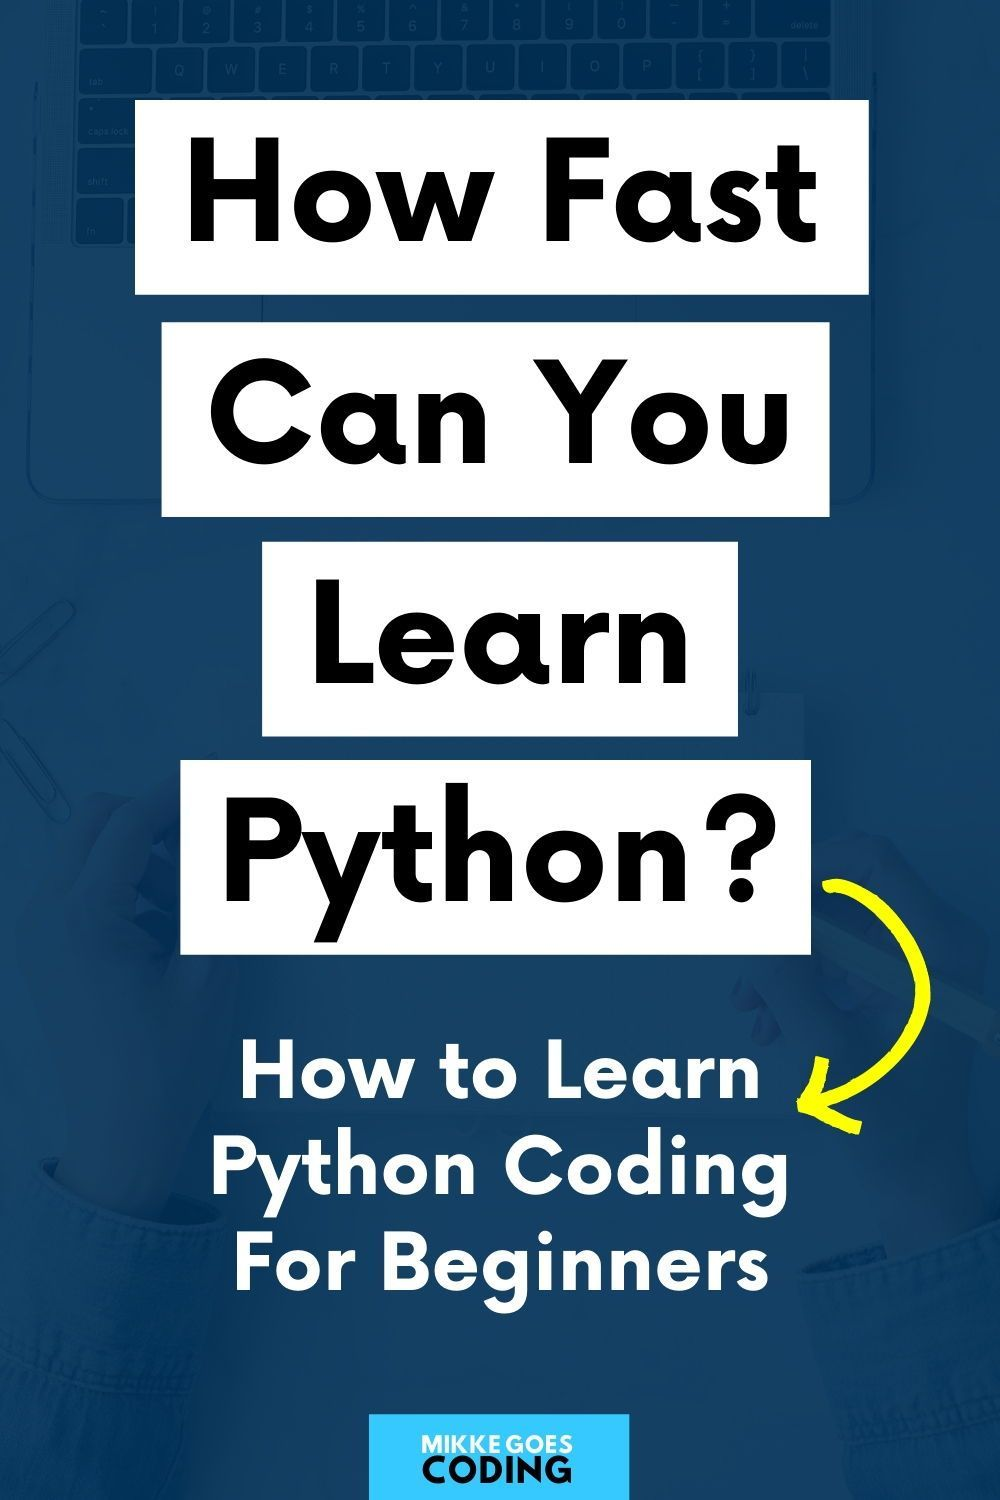 How long does it take to learn python coding 2020